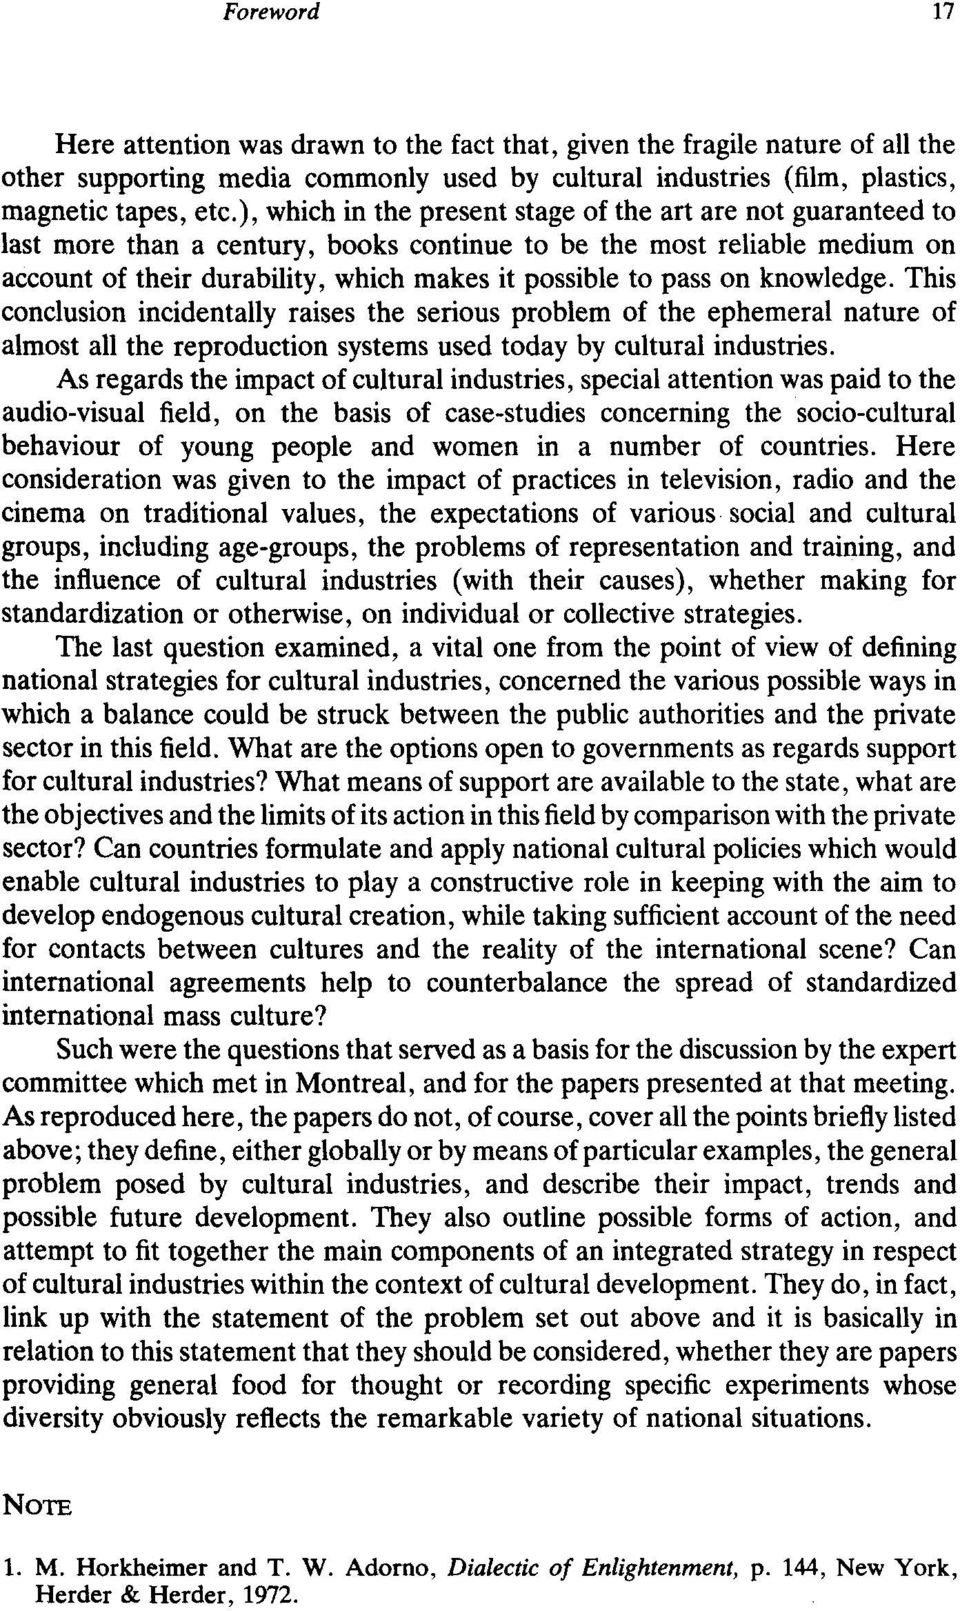 on knowledge. This conclusion incidentally raises the serious problem of the ephemeral nature of almost all the reproduction systems used today by cultural industries.